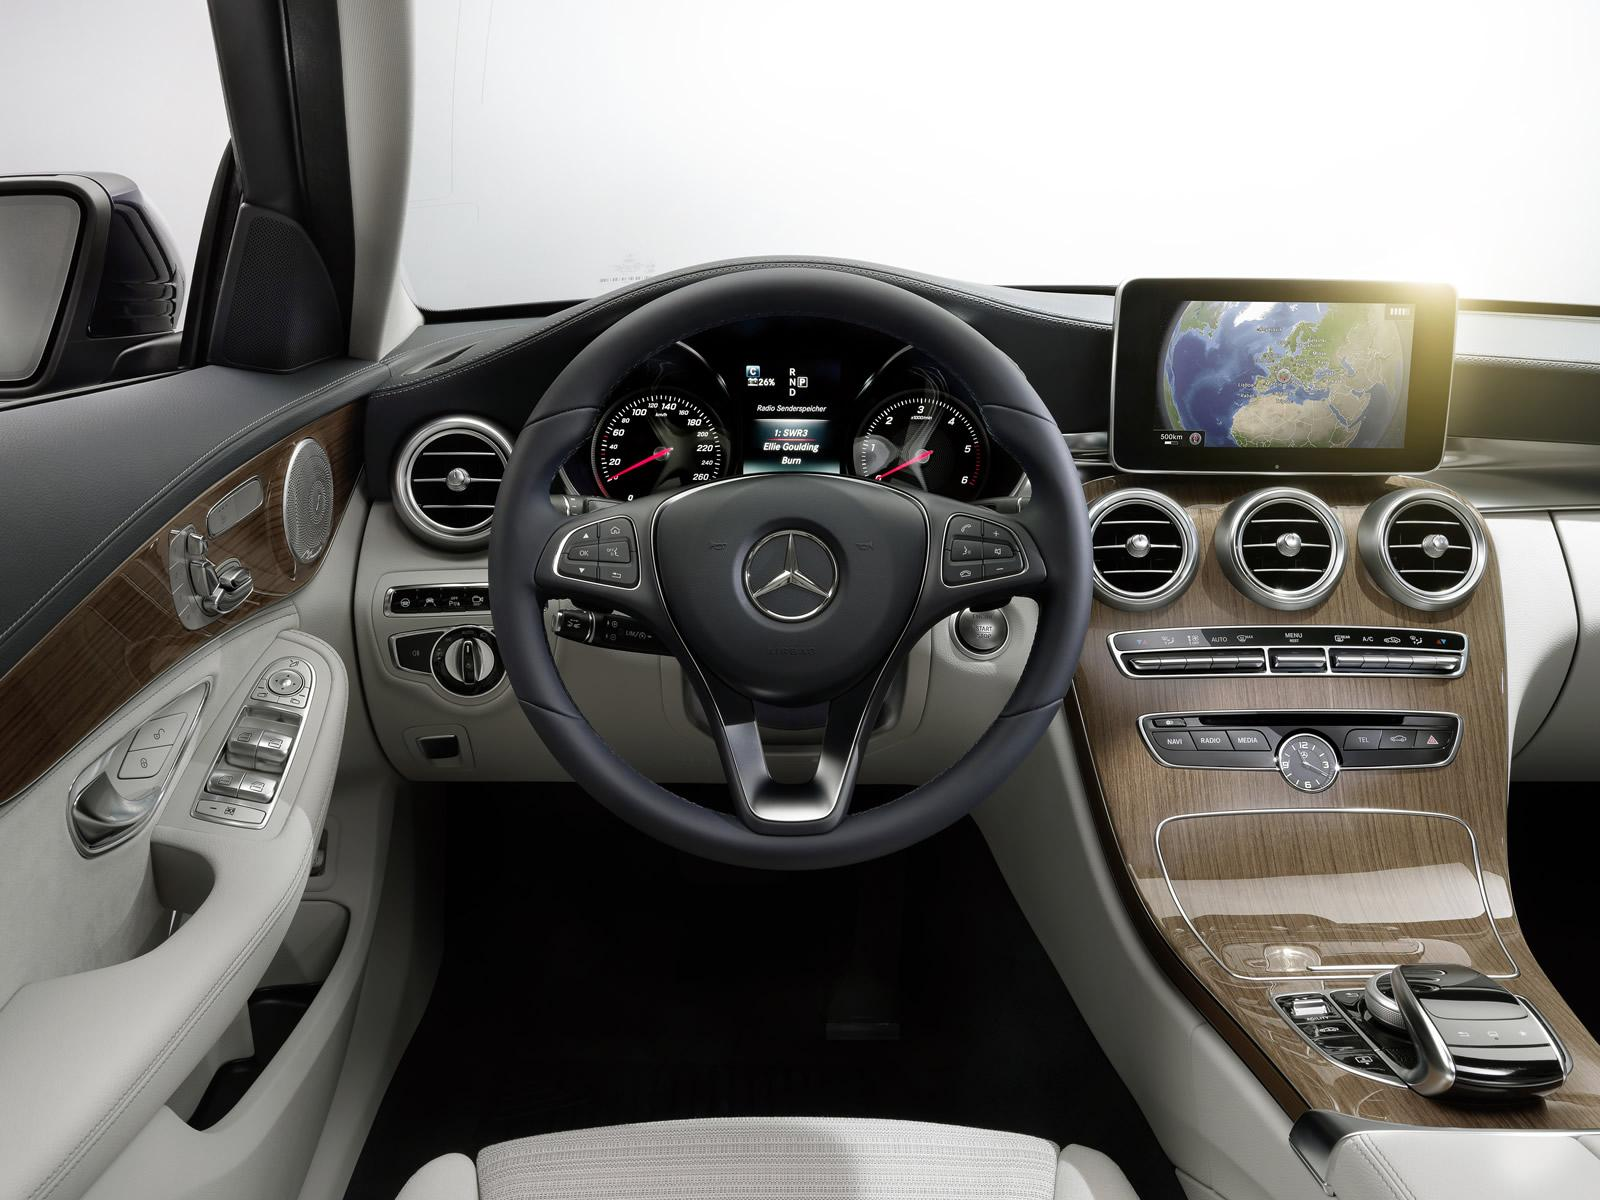 2014 mercedes benz c class interior. Black Bedroom Furniture Sets. Home Design Ideas